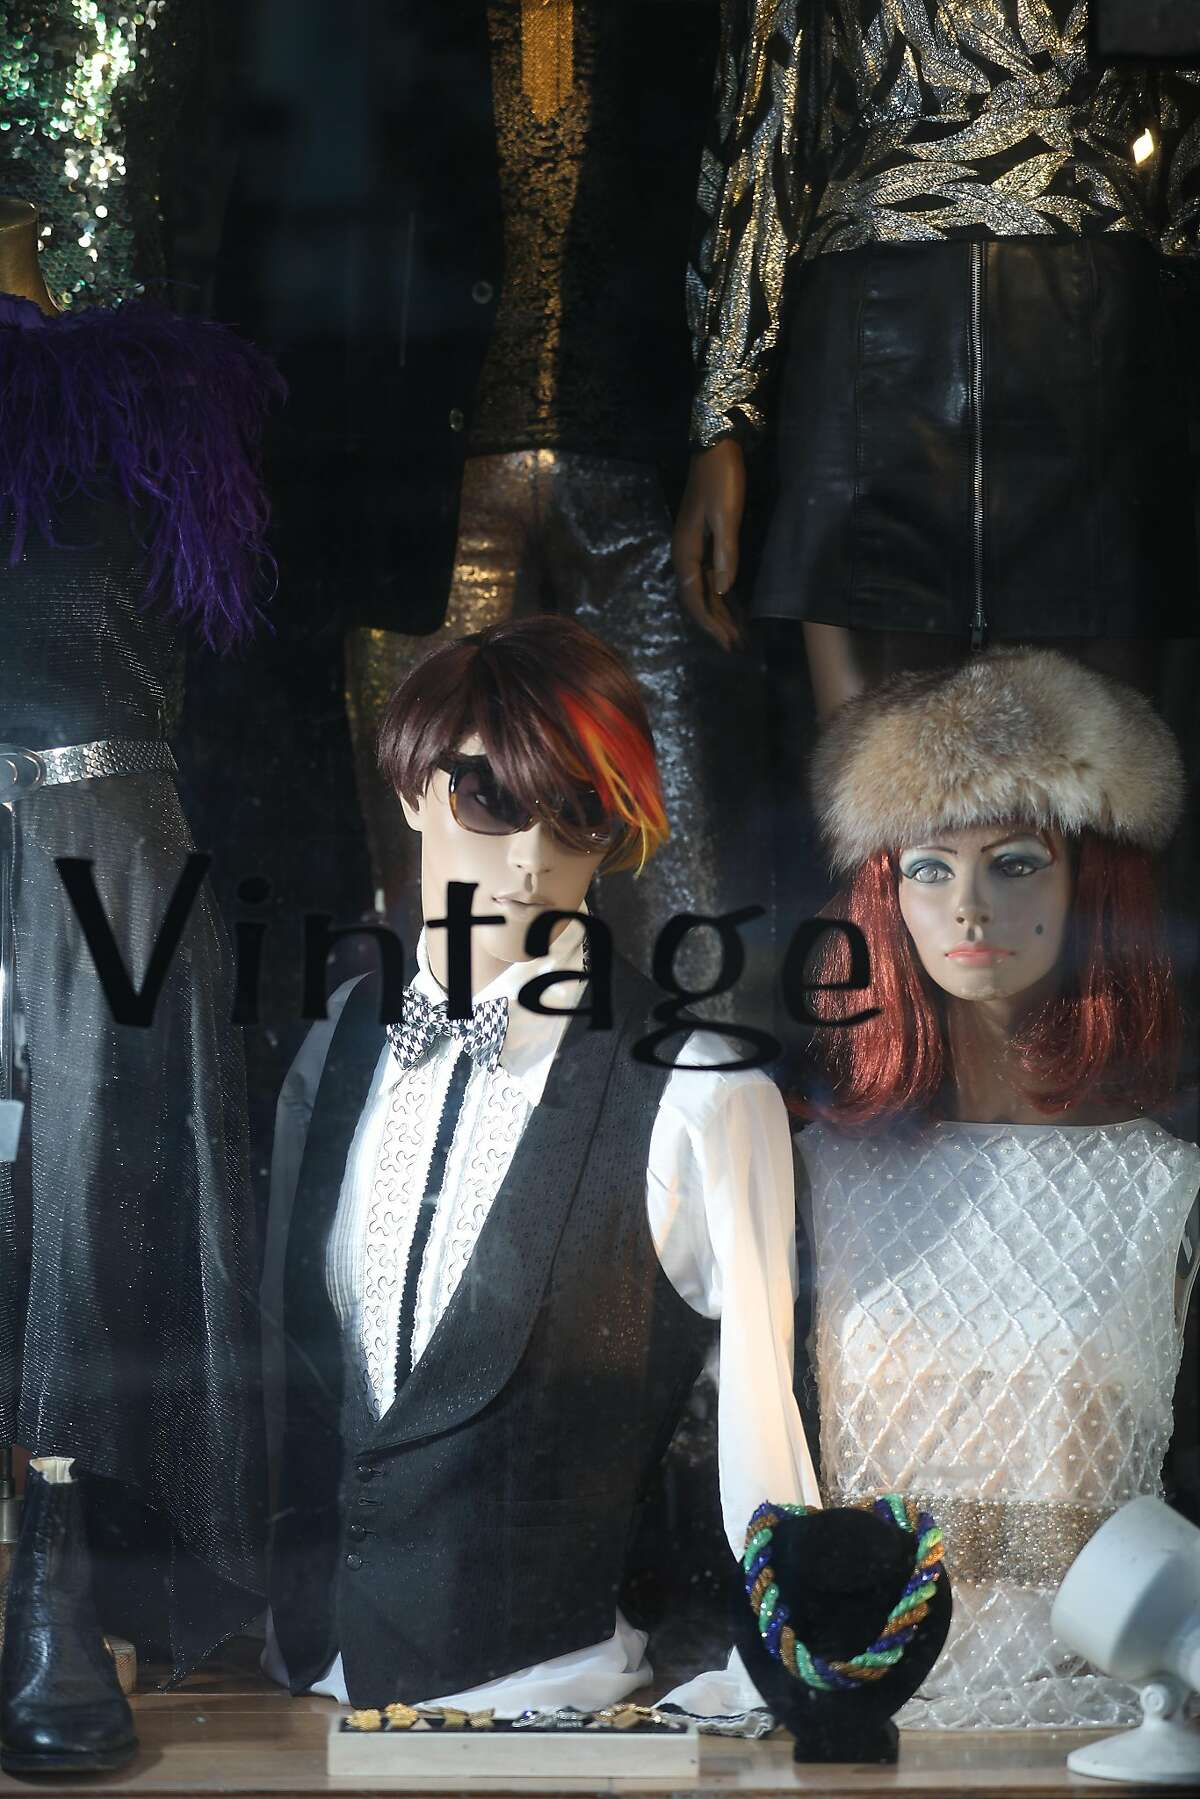 Mannequin's wearing vintage fashion are seen in the storefront of Schauplatz vintage on Thursday, January 10, 2019 in San Francisco, Calif.